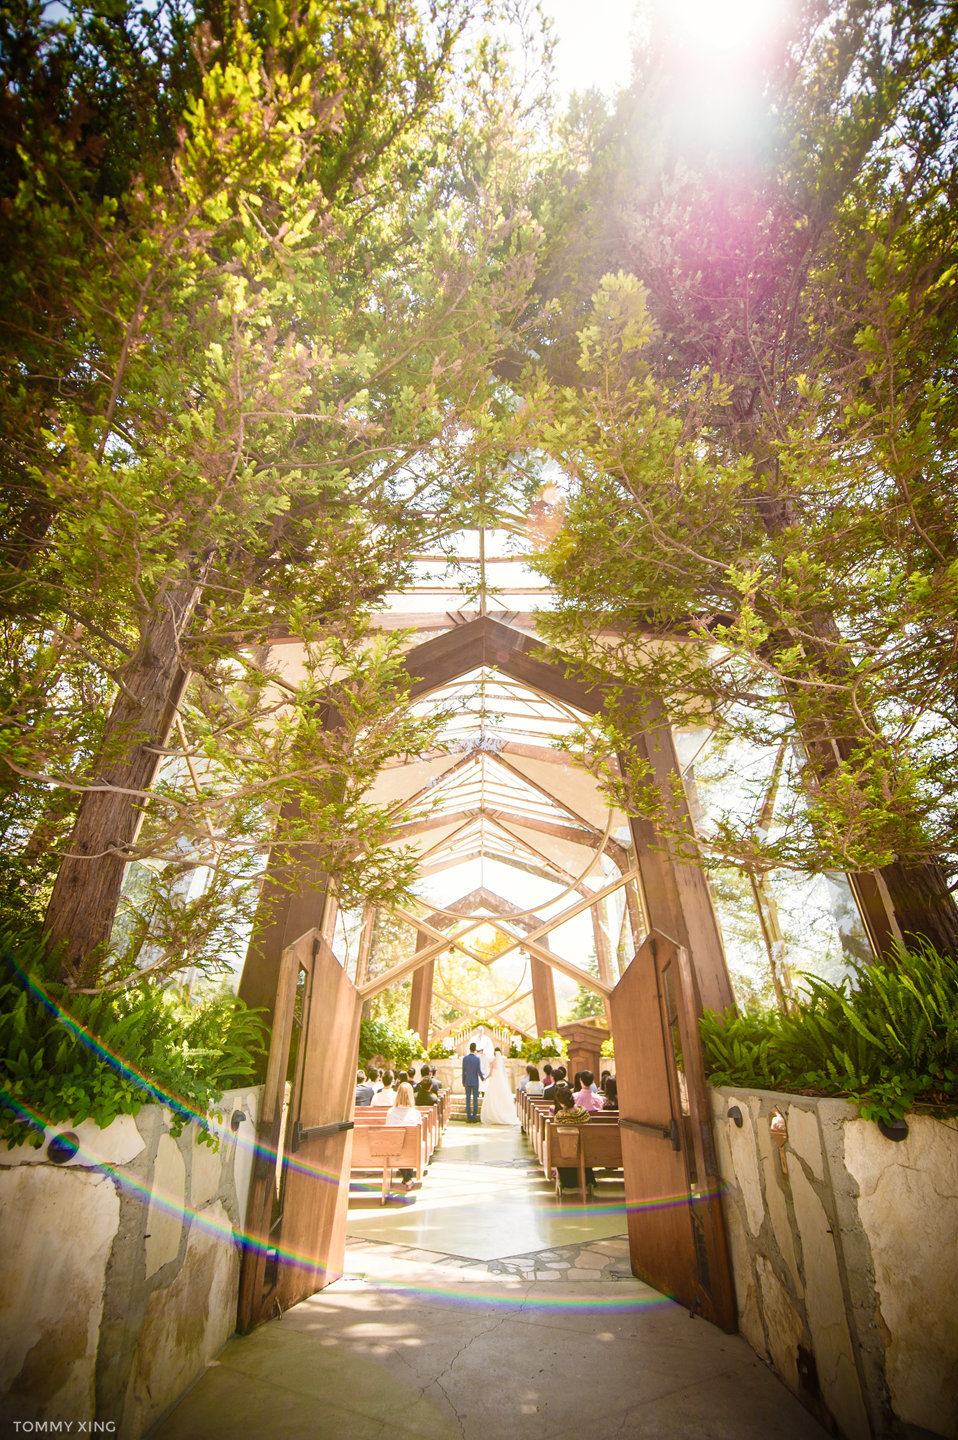 Wayfarers chapel Wedding Photography Ranho Palos Verdes Tommy Xing Photography 洛杉矶玻璃教堂婚礼婚纱照摄影师127.jpg